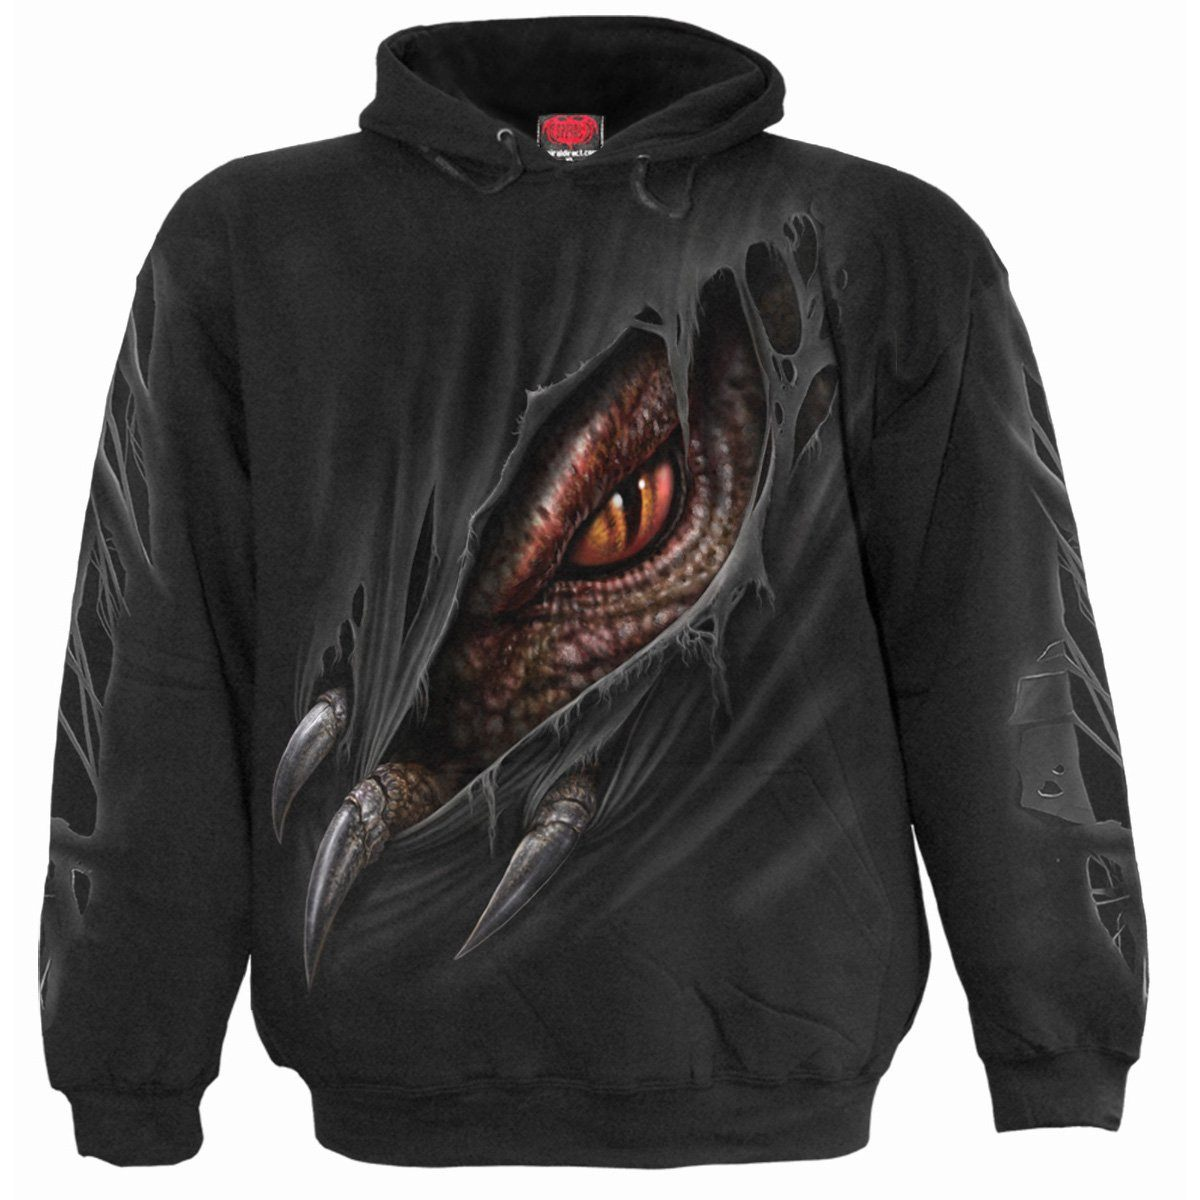 Captive Dragon Kids Black Hoodie